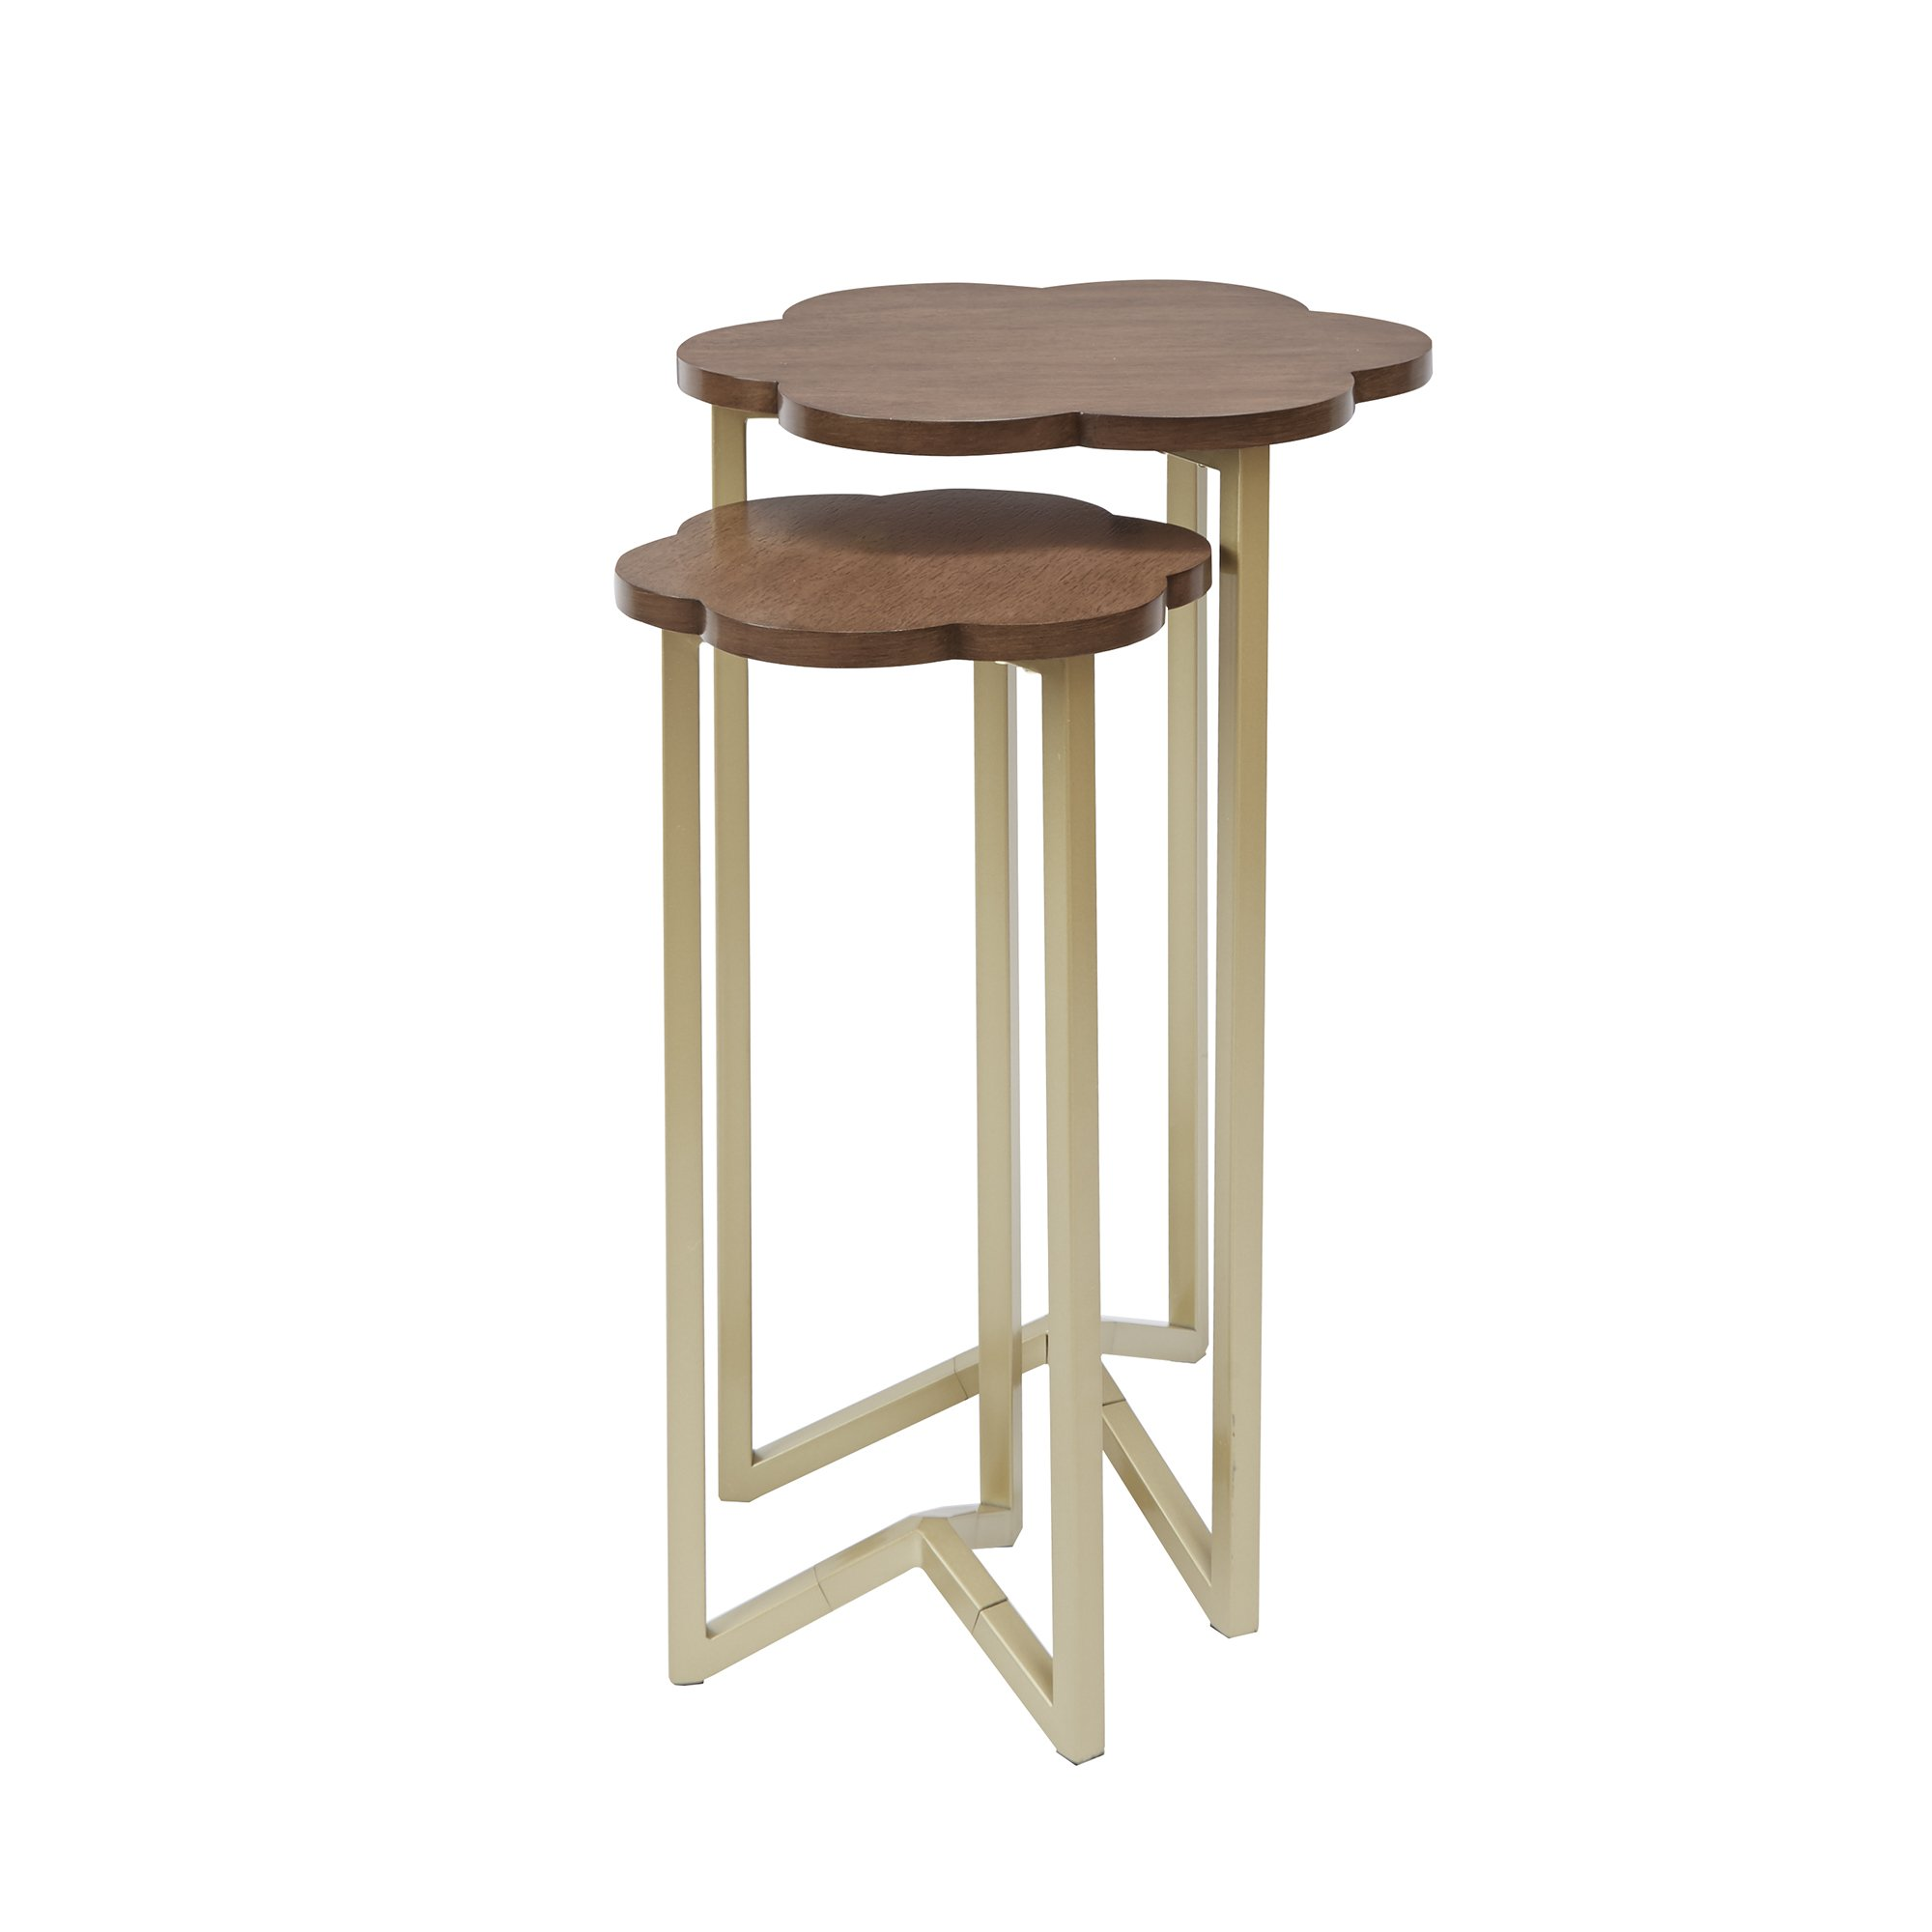 Silverwood FT1263-GLD-RGR Daphne Nesting Accent Tables (2pc), 17'' Dia x 27'' H by Silverwood